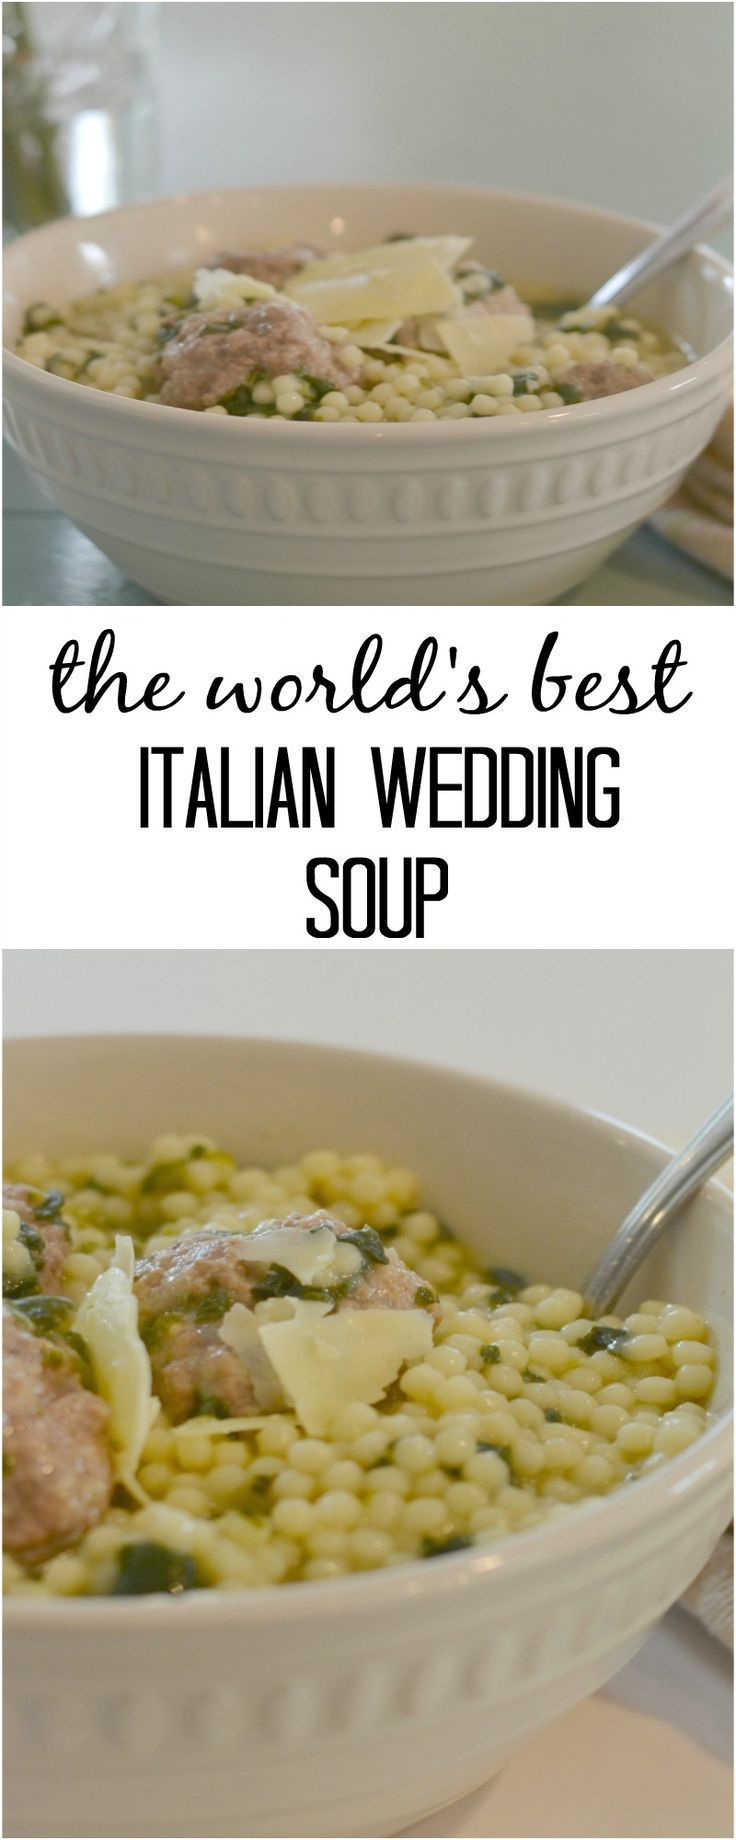 World's Best Italian Wedding Soup - Houston Mommy and Lifestyle Blogger | Moms Without Answers